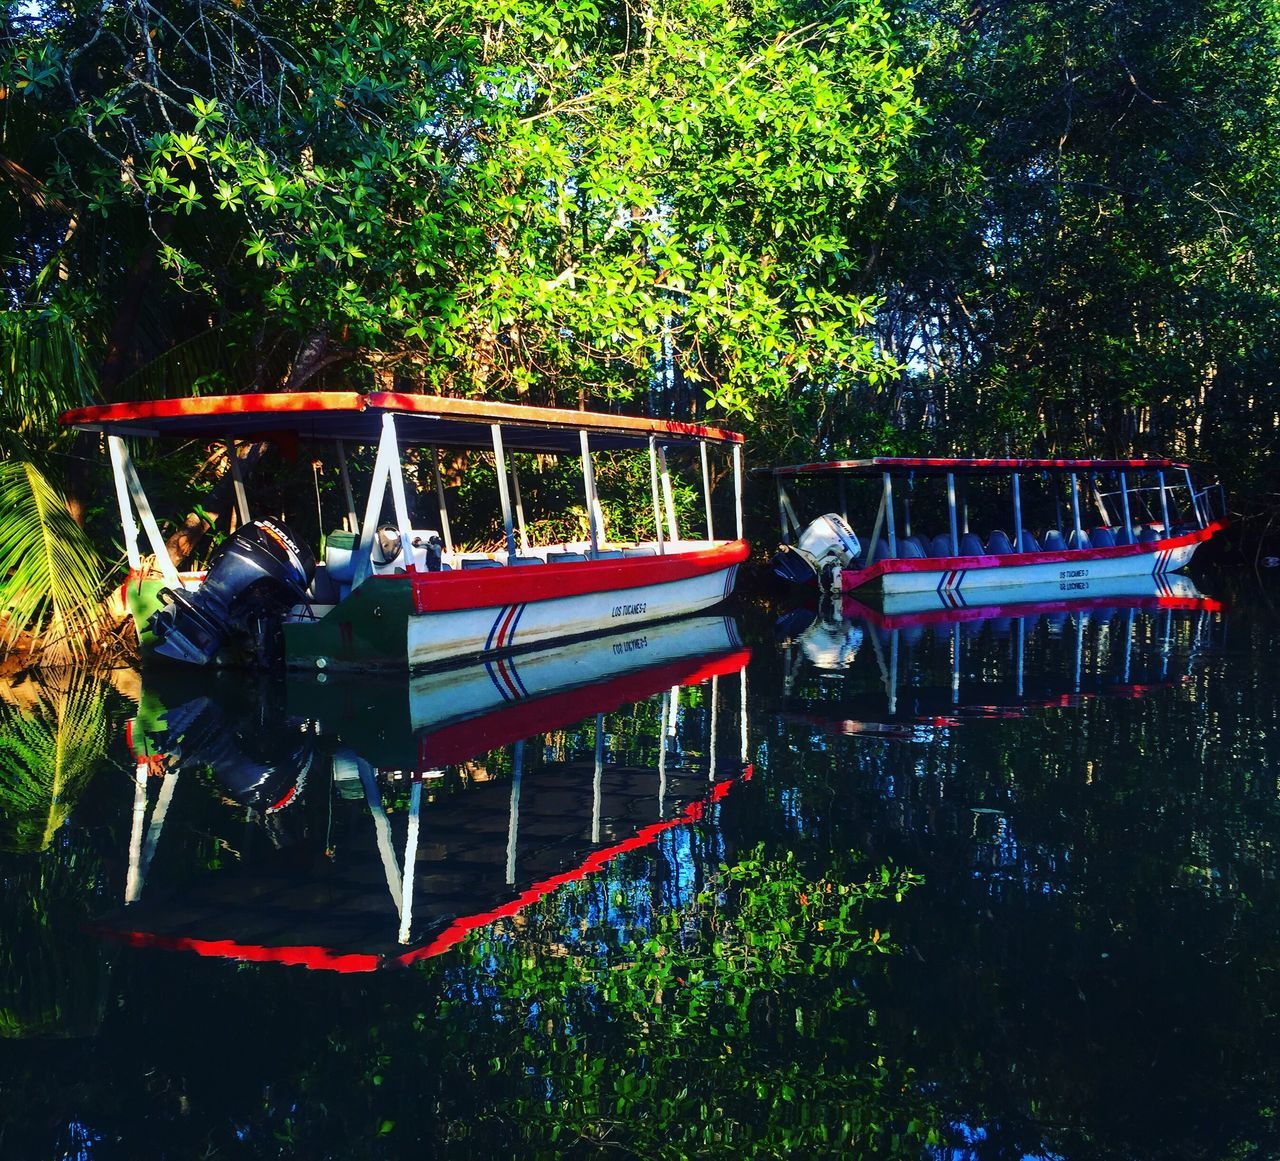 EyeEm Best Shots Mangroves forest The Week On EyeEm Tree Mode Of Transport Transportation Real People Land Vehicle Growth Nature Men Green Color Nautical Vessel Outdoors Large Group Of People Women Day